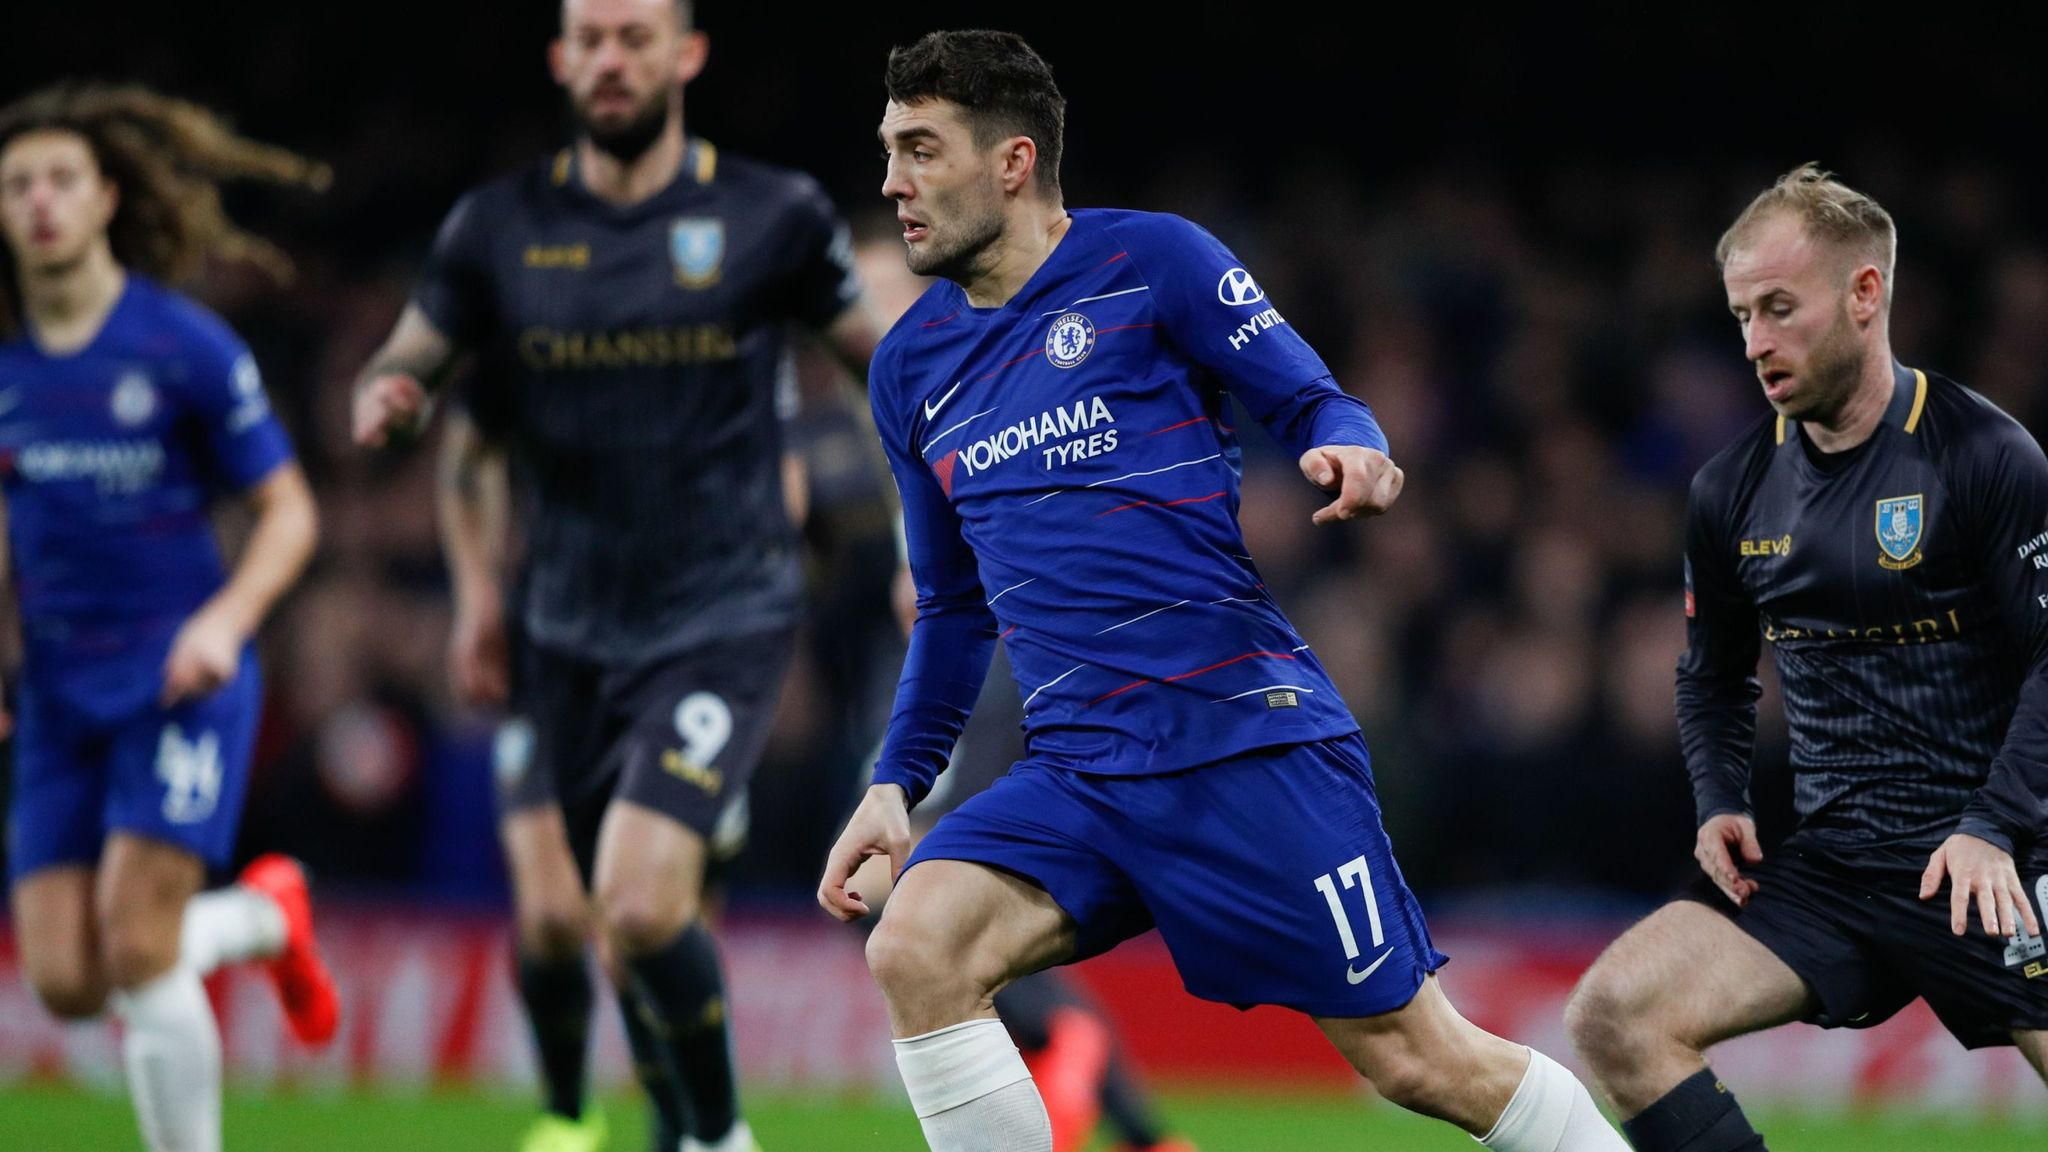 new product 50185 899aa Chelsea set to sign midfielder Mateo Kovacic from Real ...